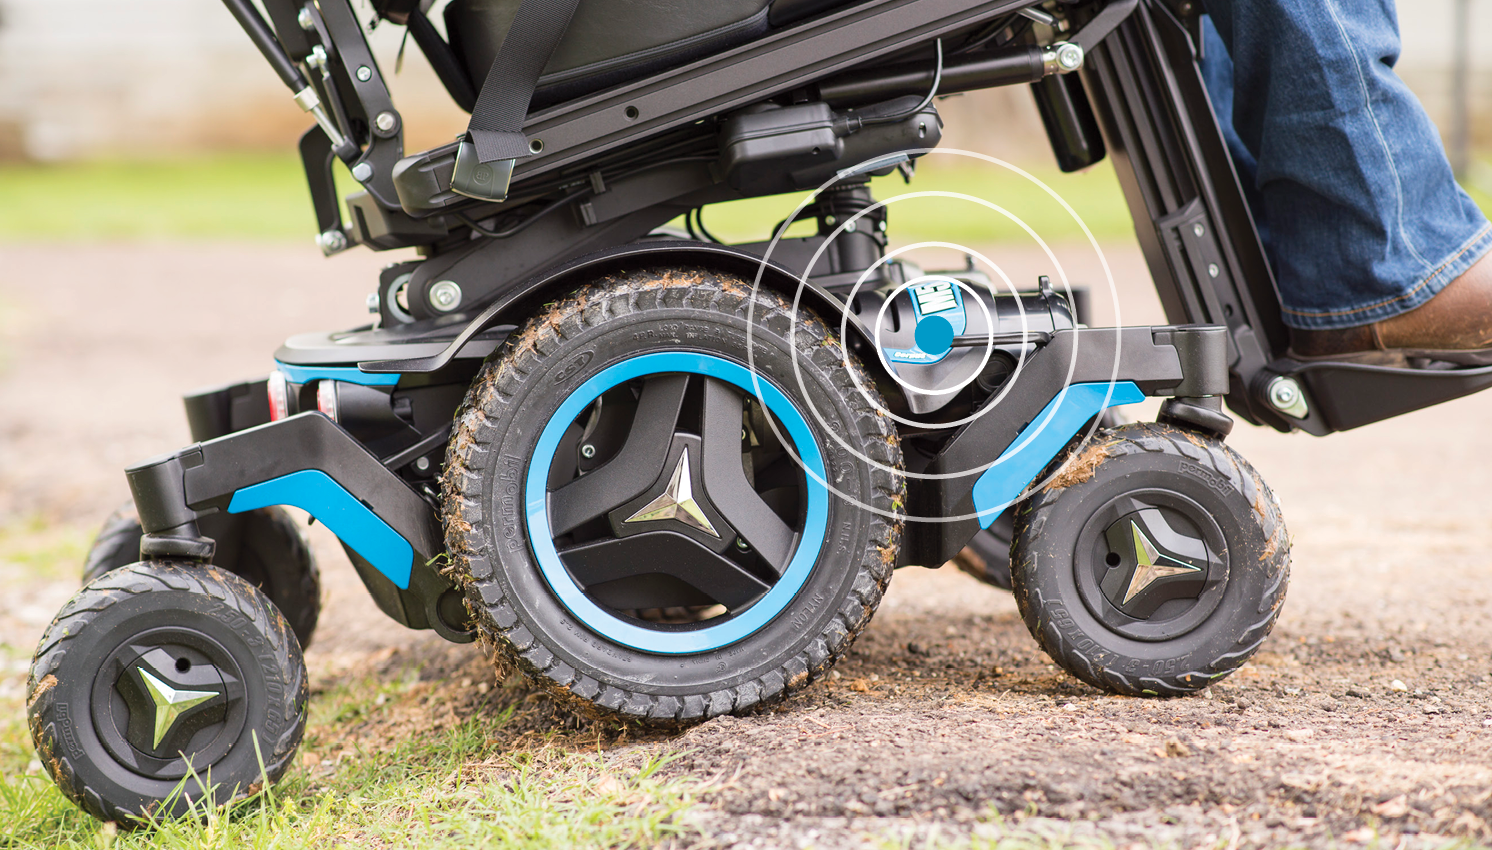 The Midwheel drive power wheelchair with tilt-in-space capability.